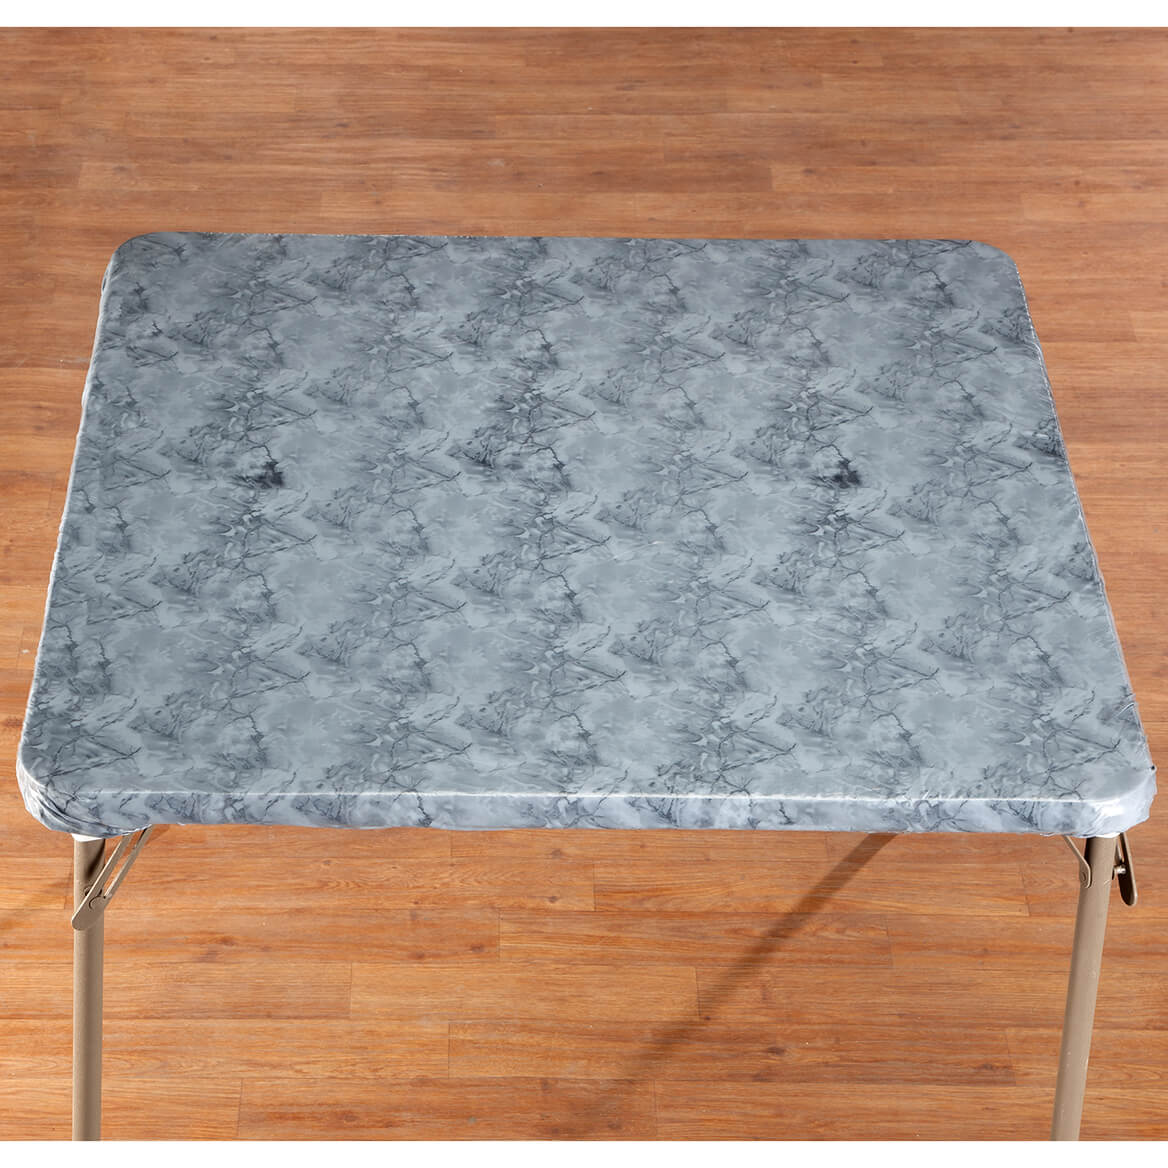 Marbled Elasticized Banquet Table Cover - Marble Table Cover - Miles ...